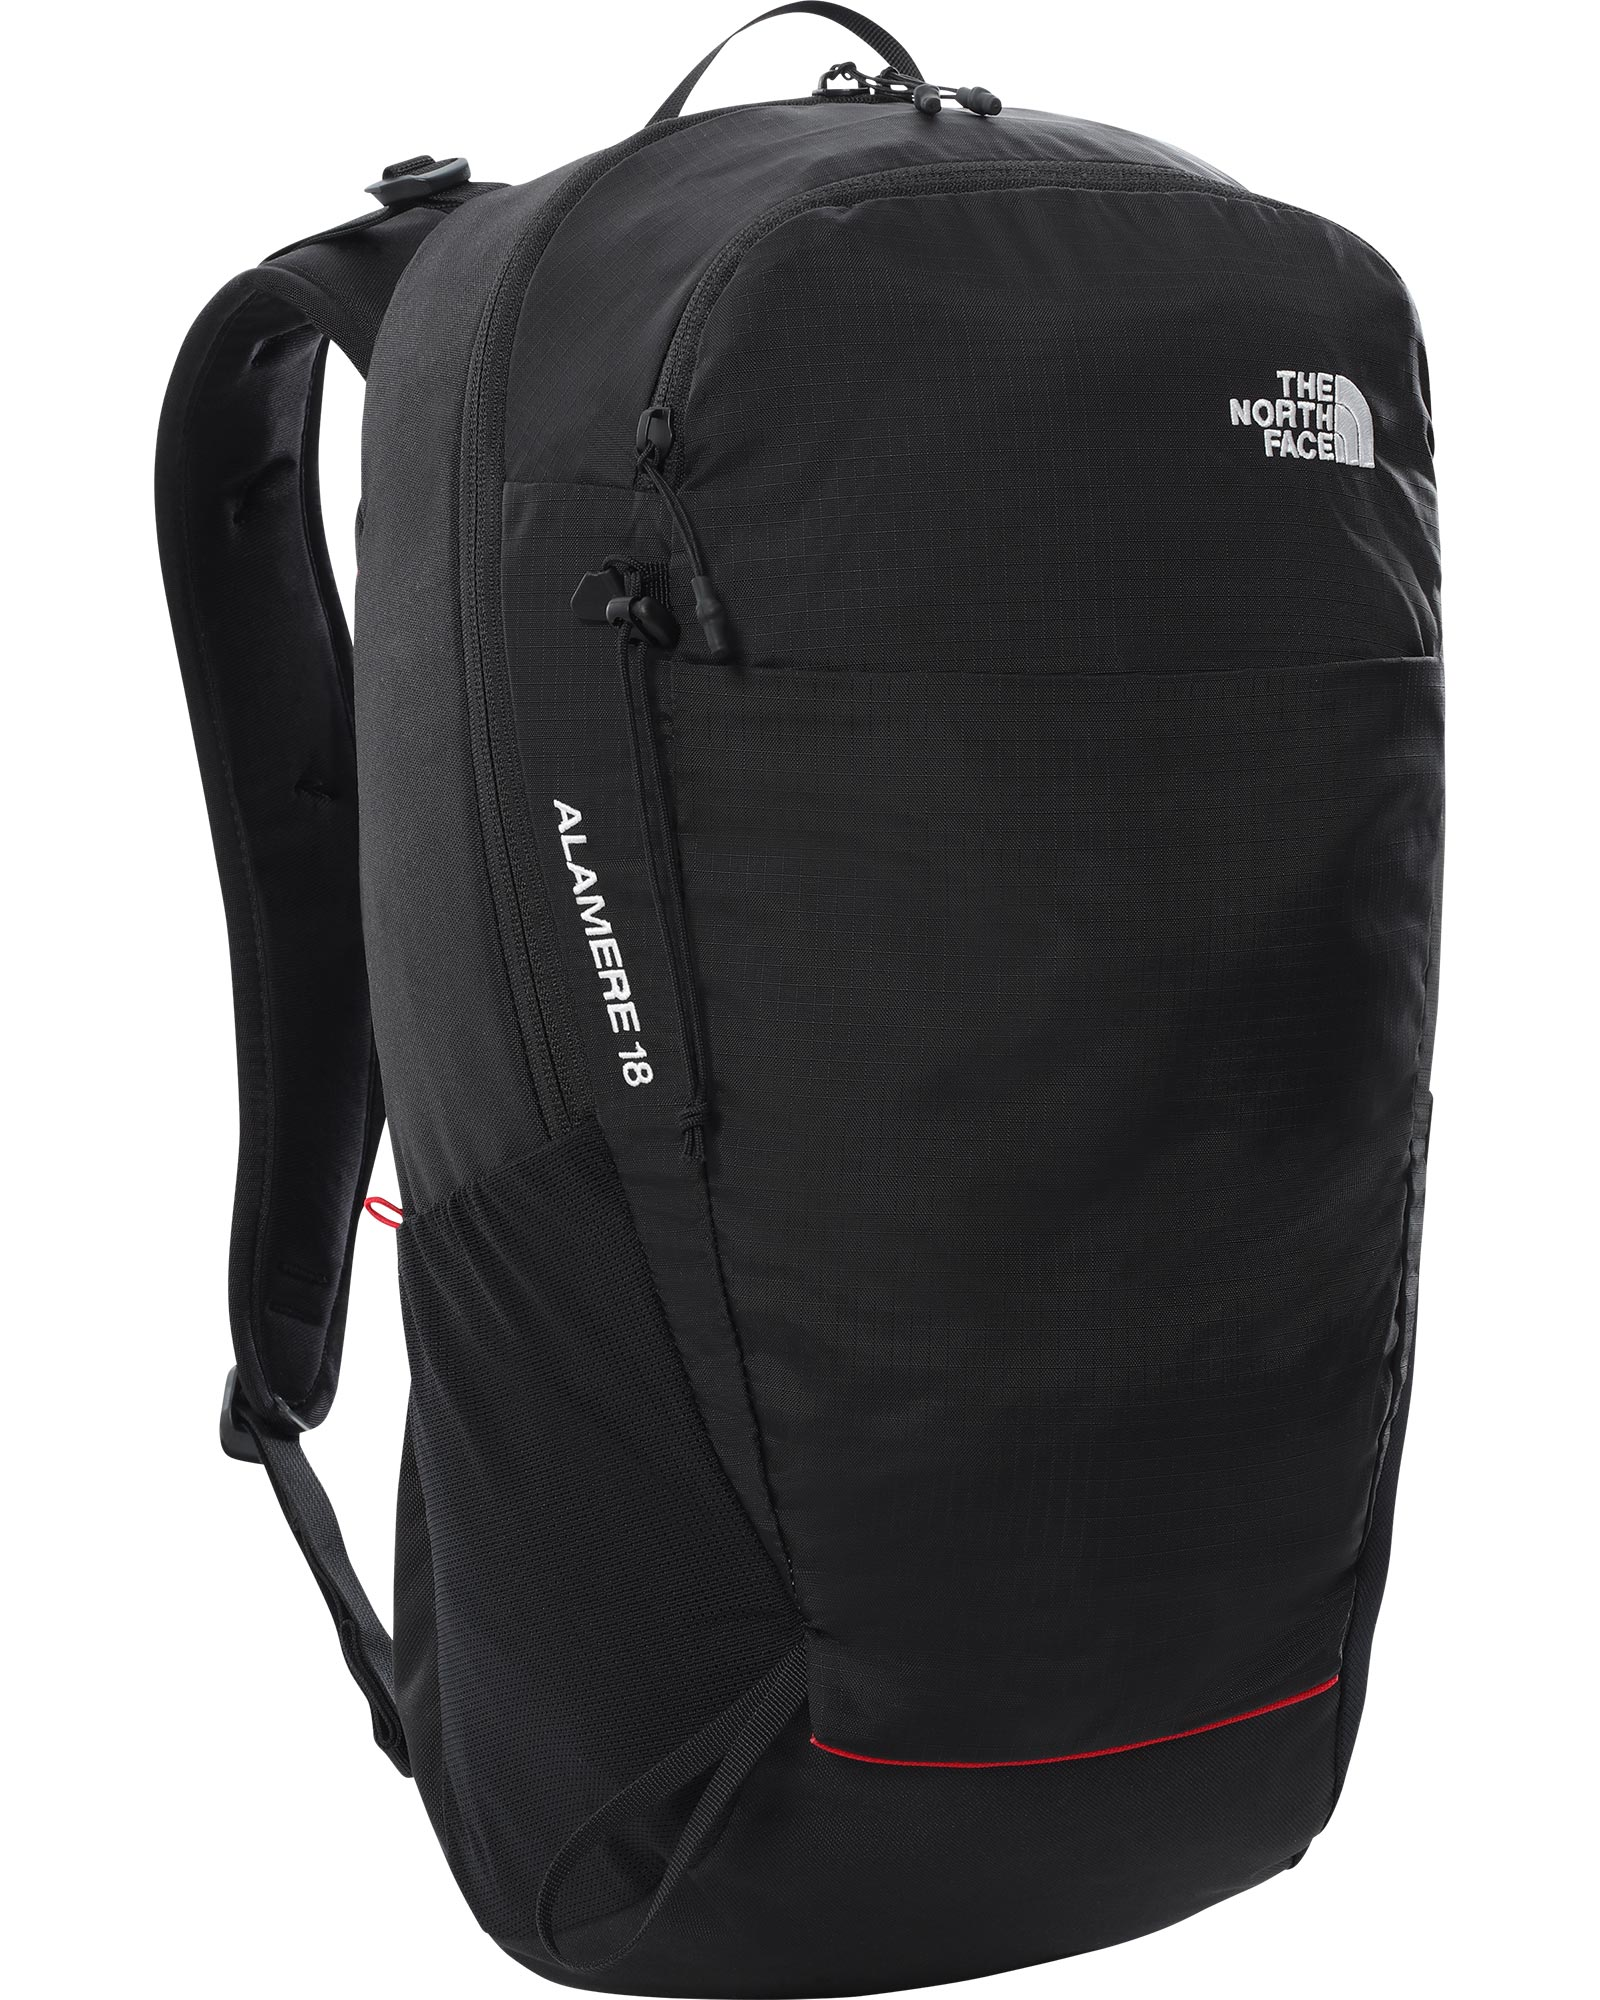 The North Face Basin 18 Backpack 0